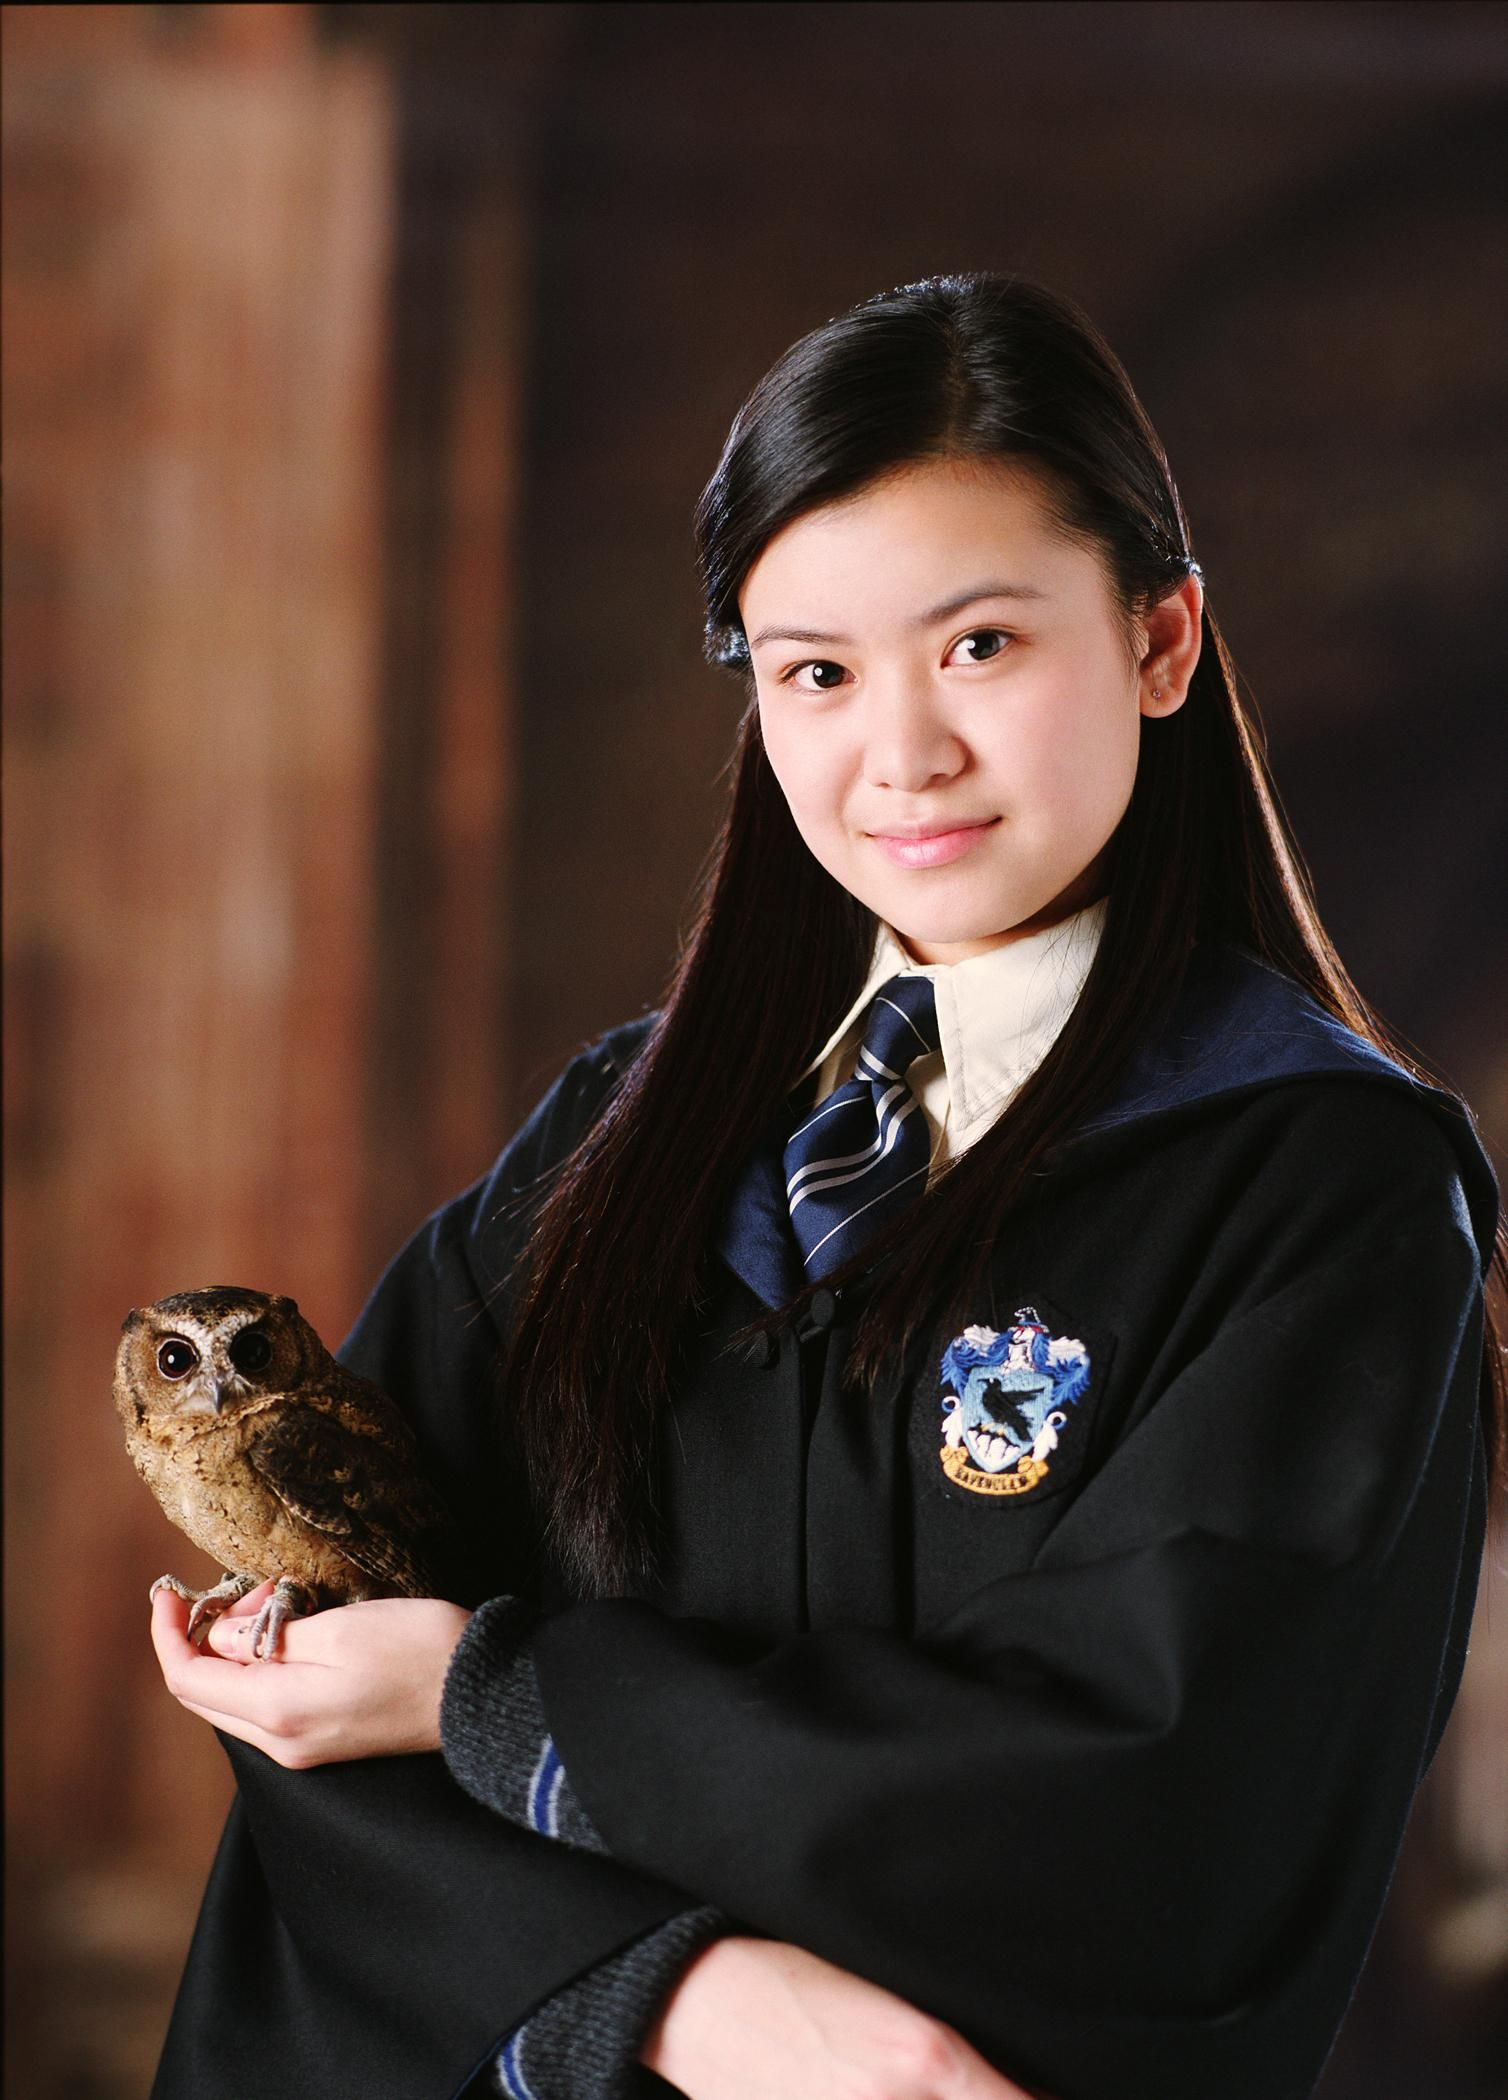 Katie Leung As Cho Chang Cho Is One Of The First Students To Believe Harry S Declaration Of Voldemort Atores De Harry Potter Cosplay De Harry Potter Cho Chang